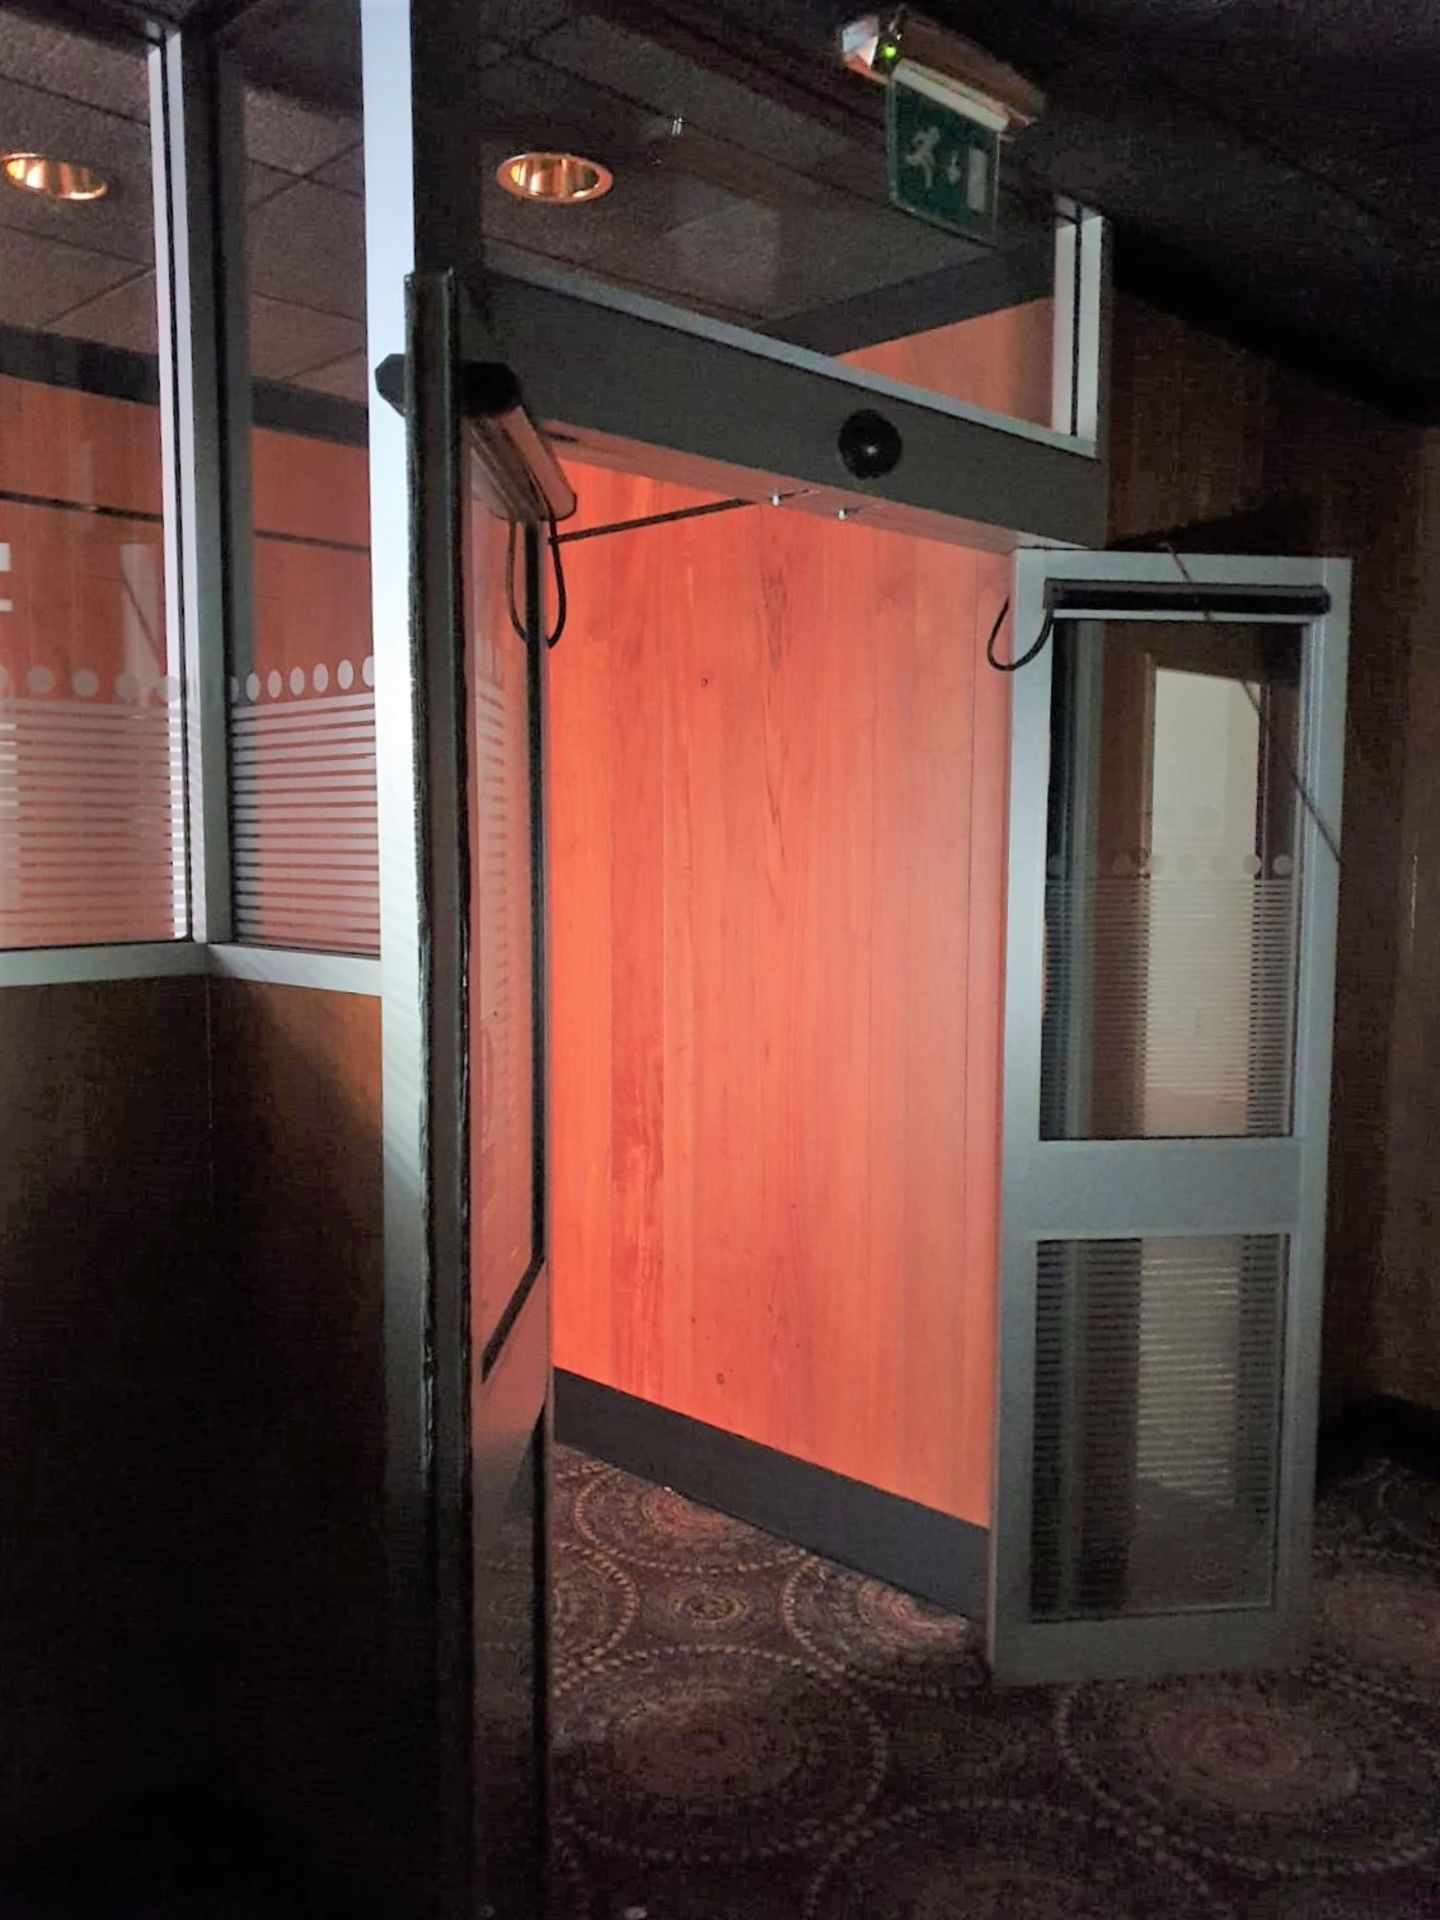 Lot 7550 - 1 x Set of Automatic Double Doors - Silver Finish - Height 216 cms x Height 276 cms Overall -